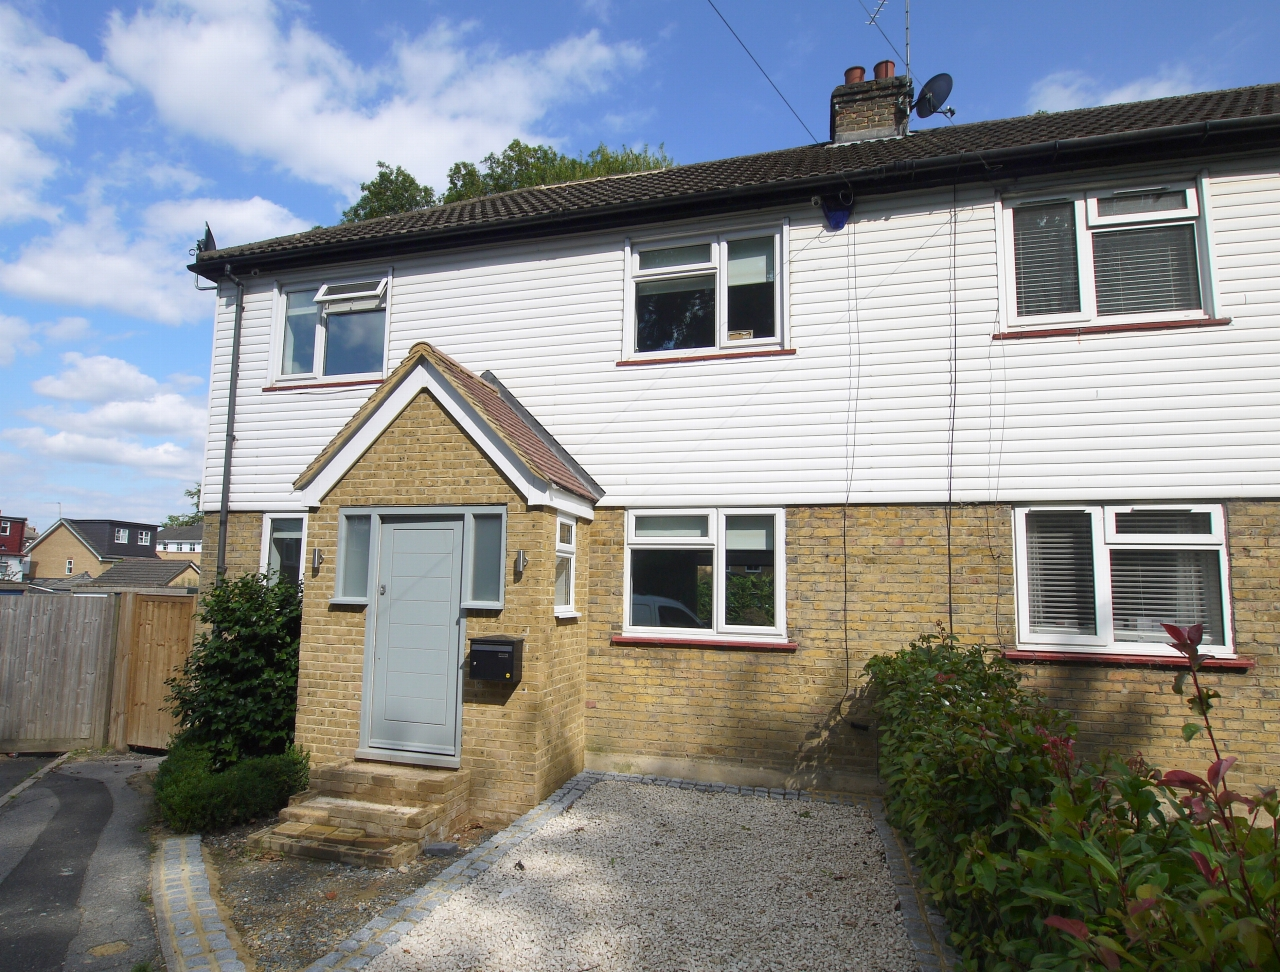 3 bedroom end terraced house Sold in Sevenoaks - Photograph 1